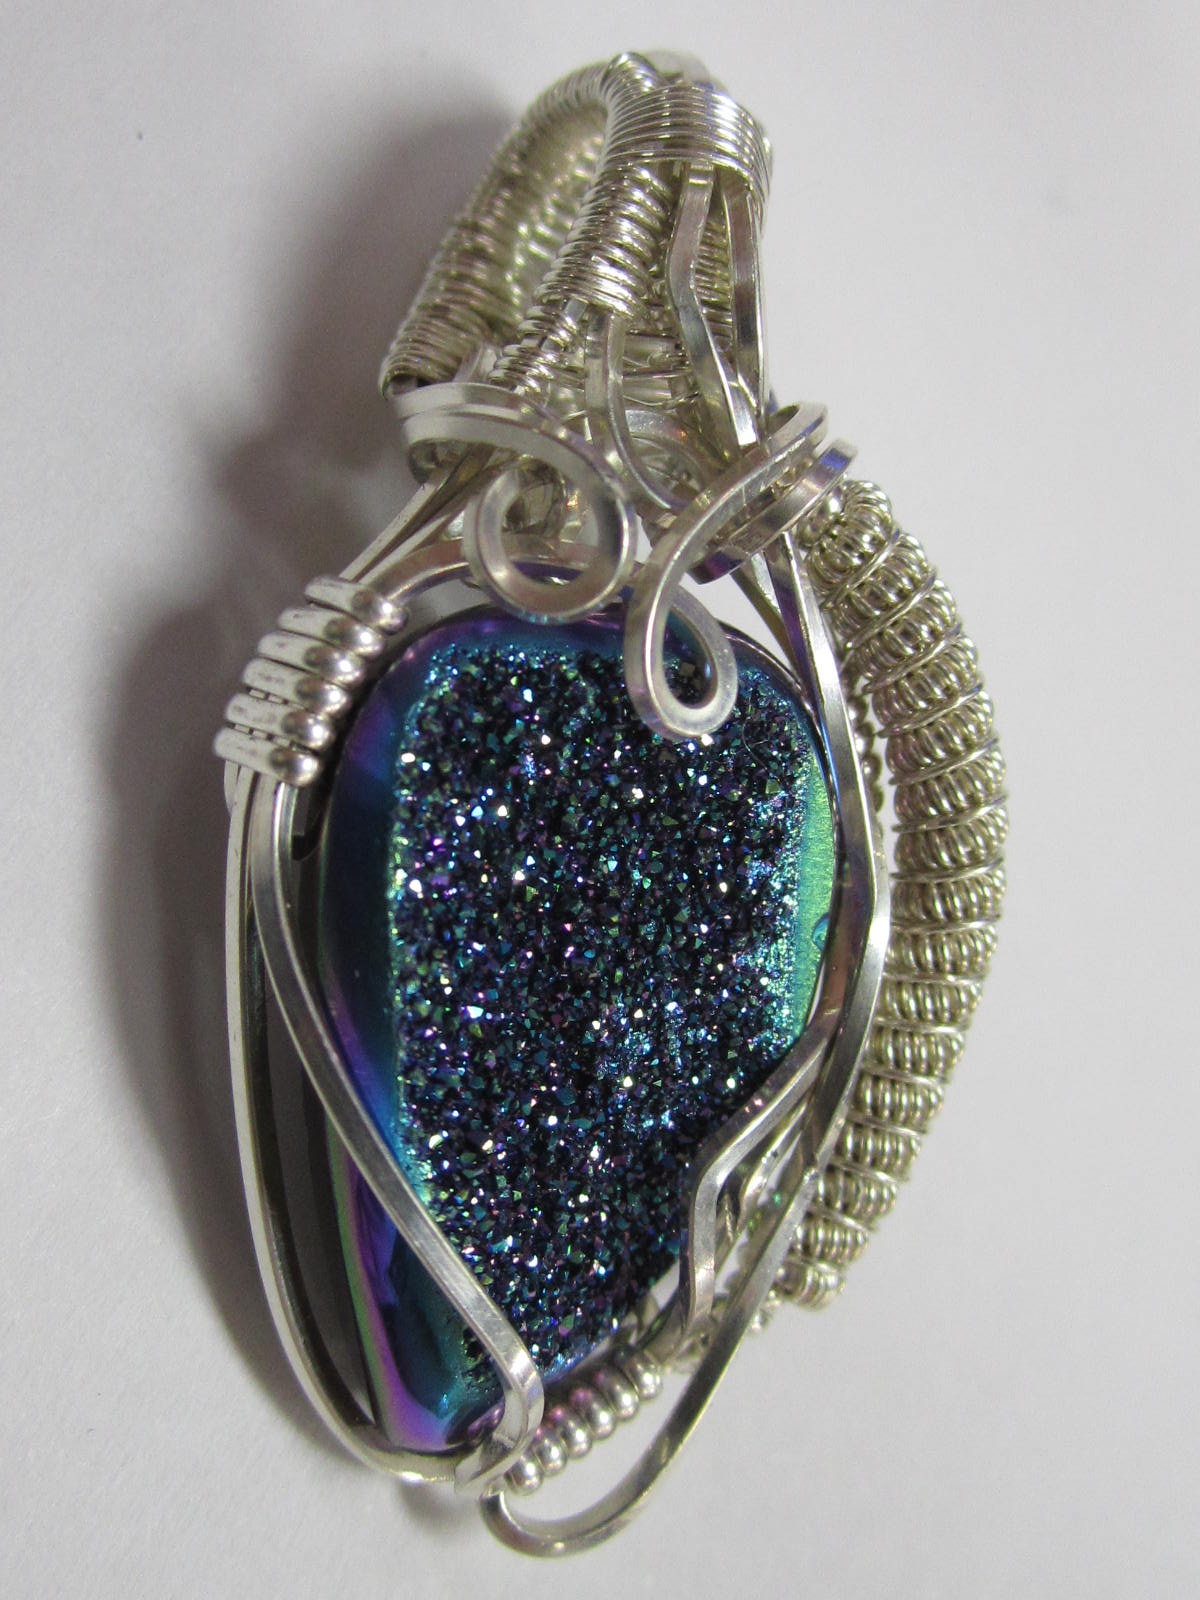 Wire Wrap Pendant - Druzy Quartz in Sterling Silver - Bead World Beads